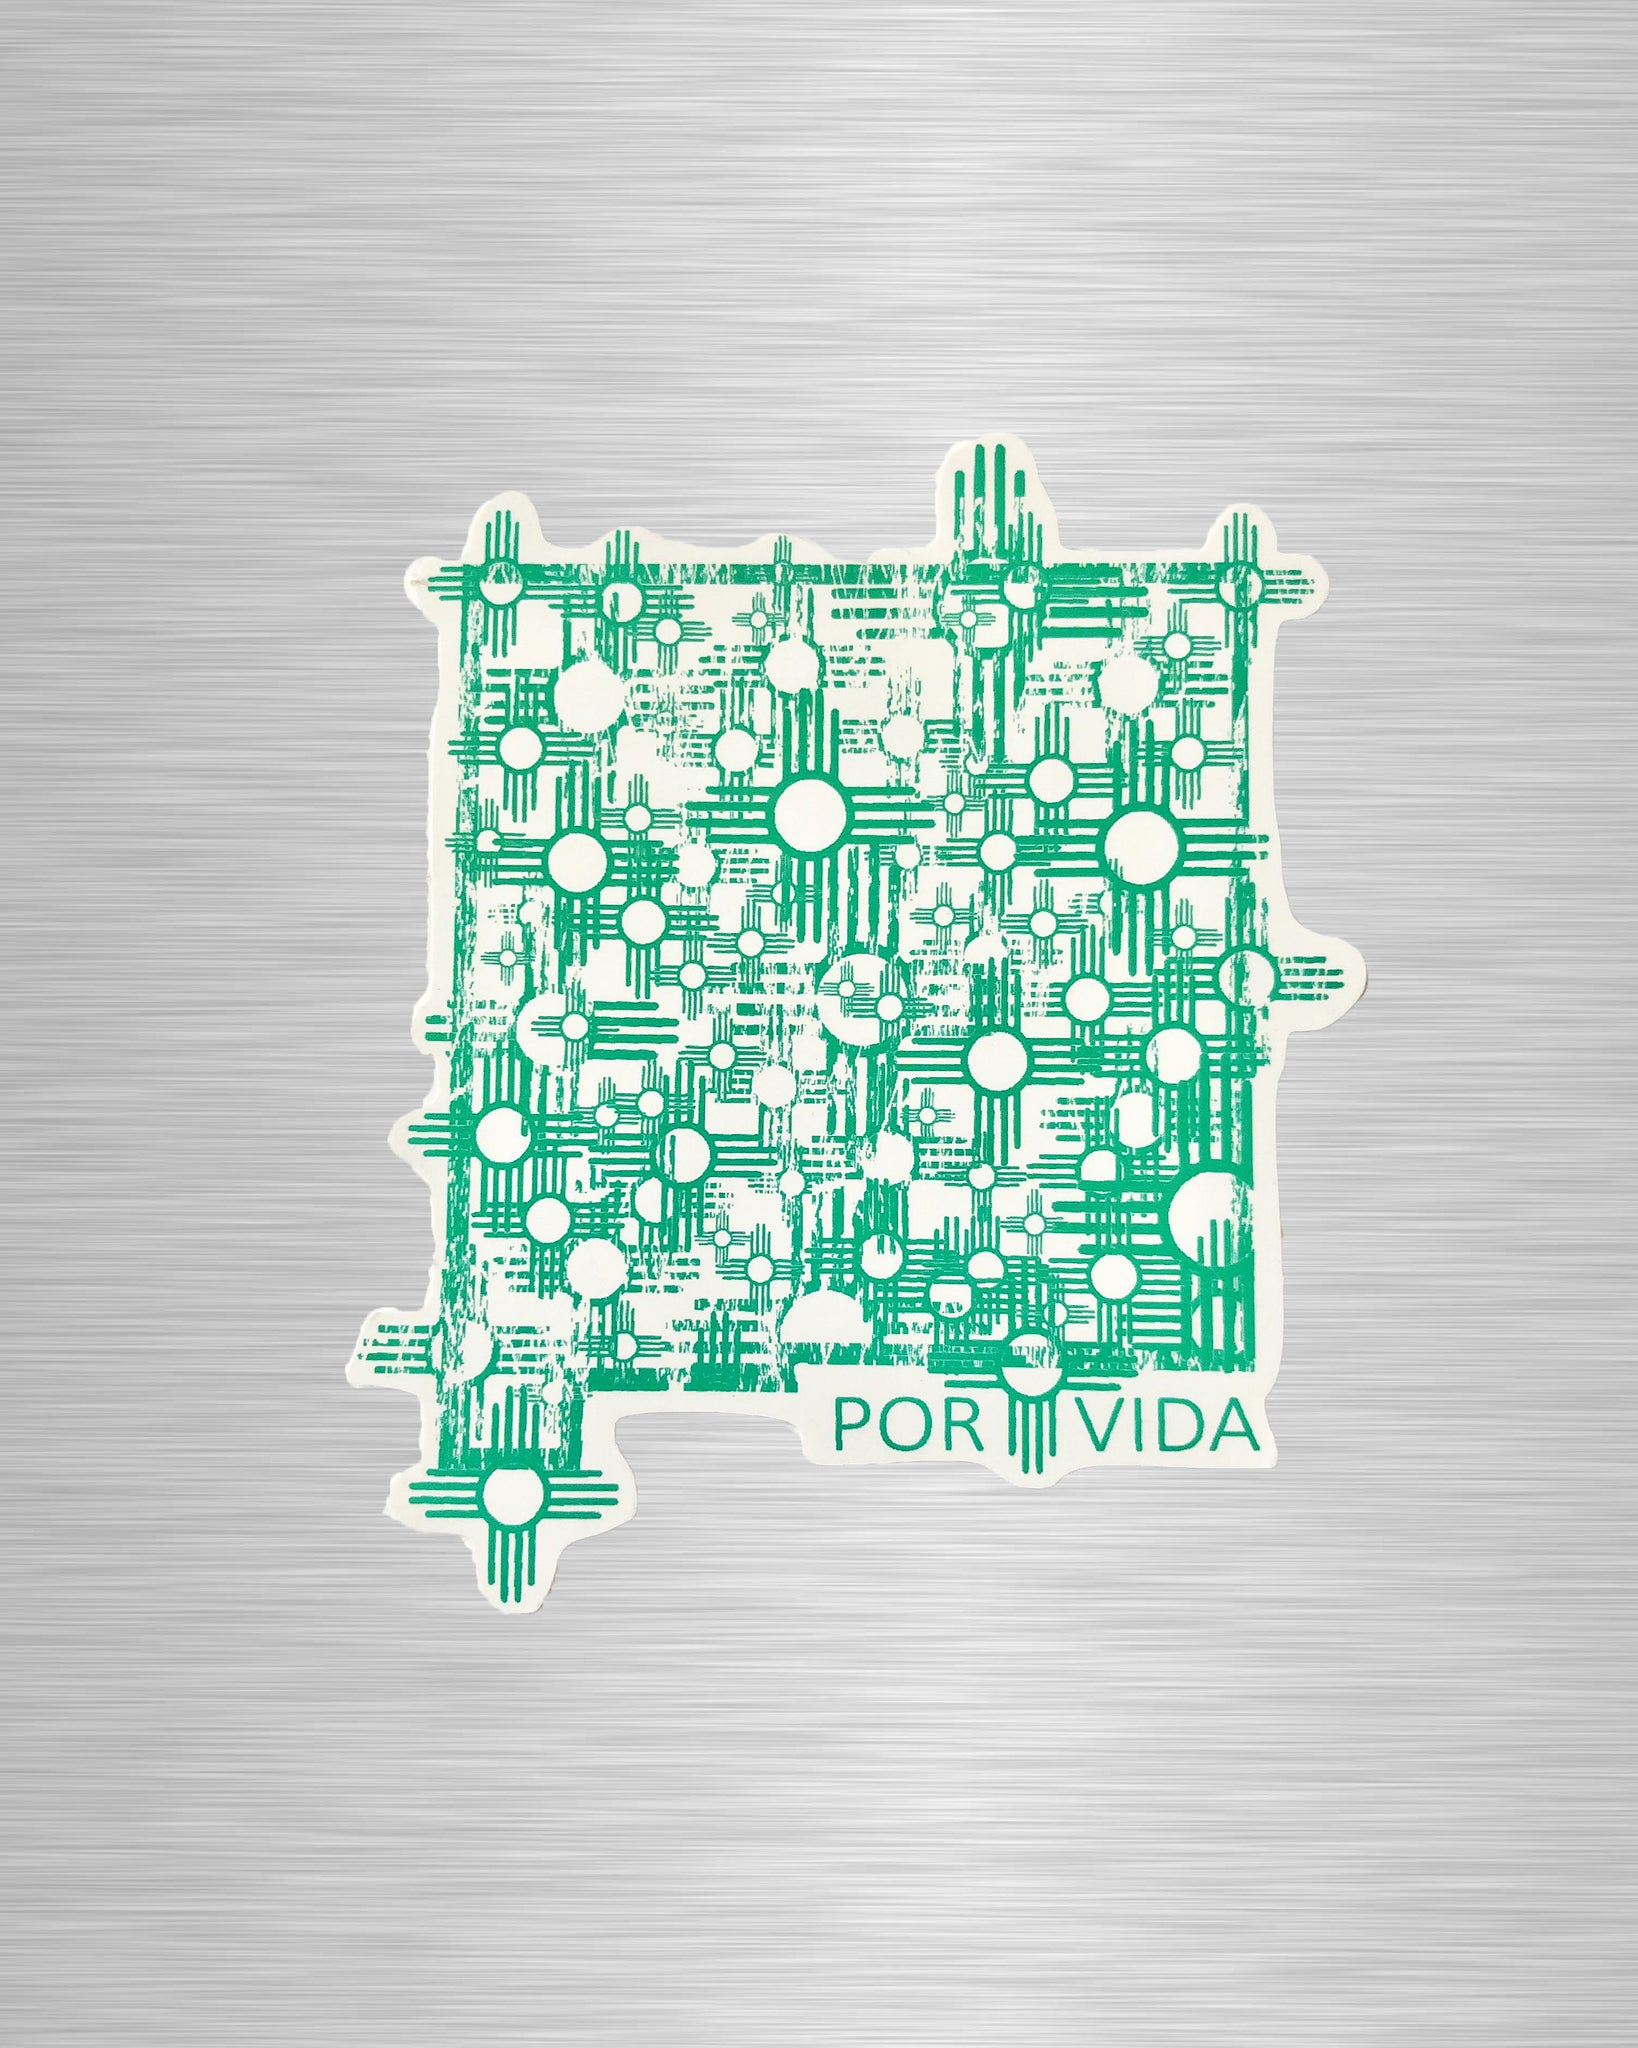 New Mexico Por Vida Vinyl Sticker/Decal